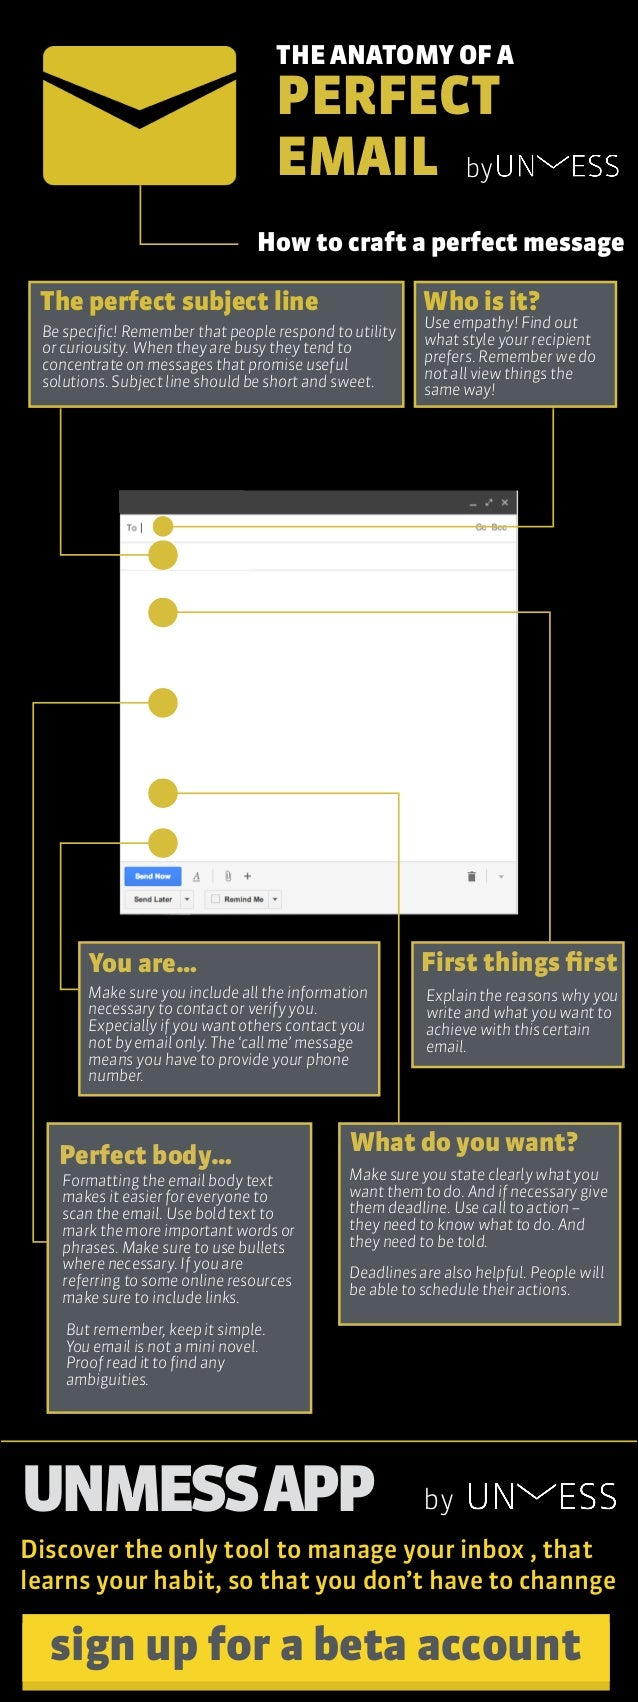 The Anatopmy of a Perfect Email Infographic